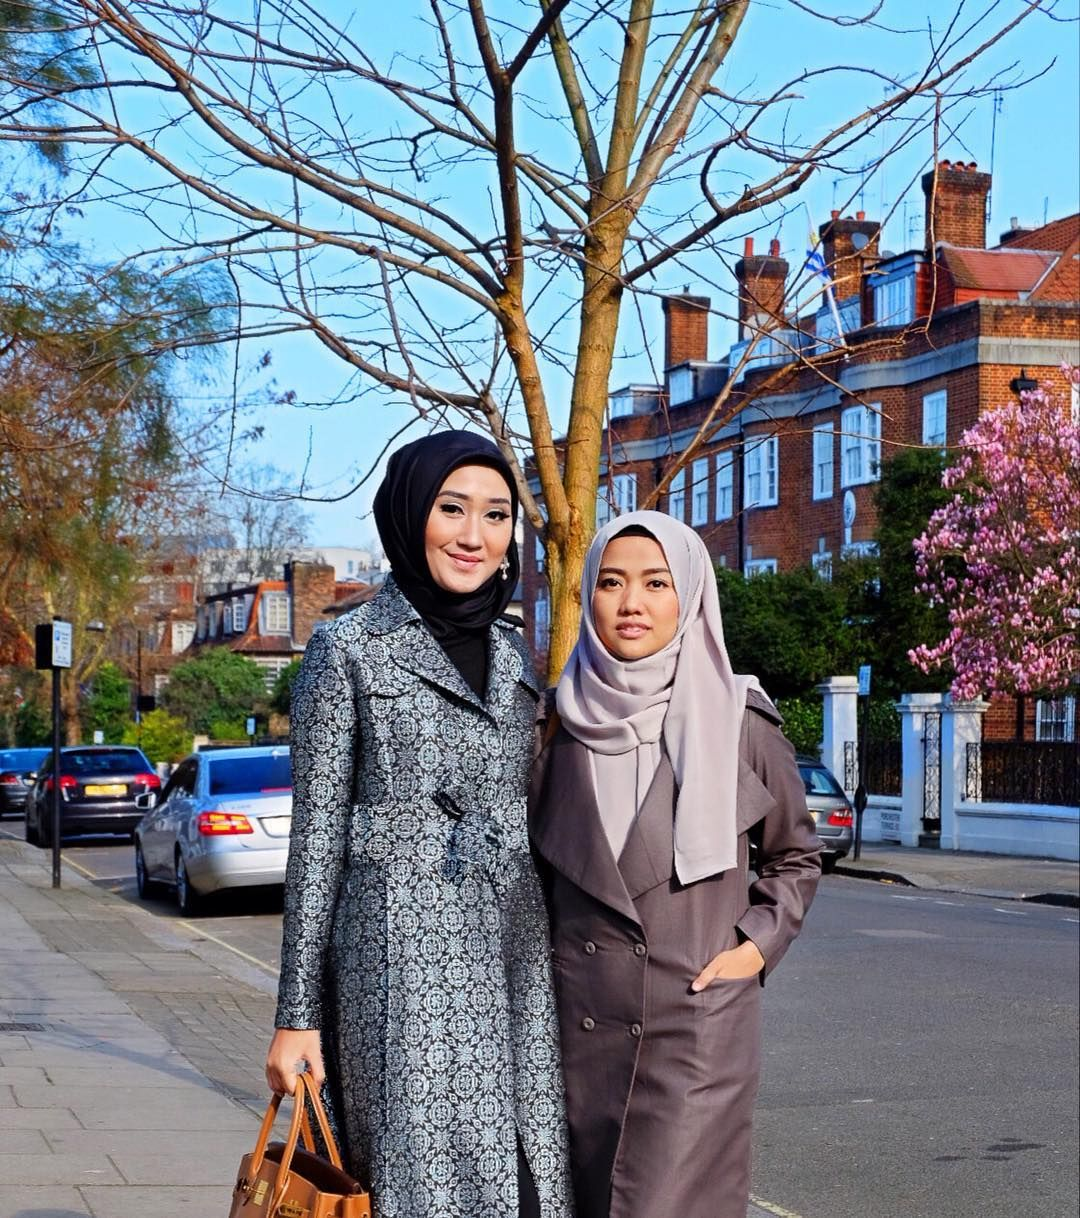 Moment before CNN International picked us up in our apartment and invited us to their studio. LIVE on CNN International 11.30am (UK time) Bismillah yaa Rabb..  @diajenglestari by dianpelangi